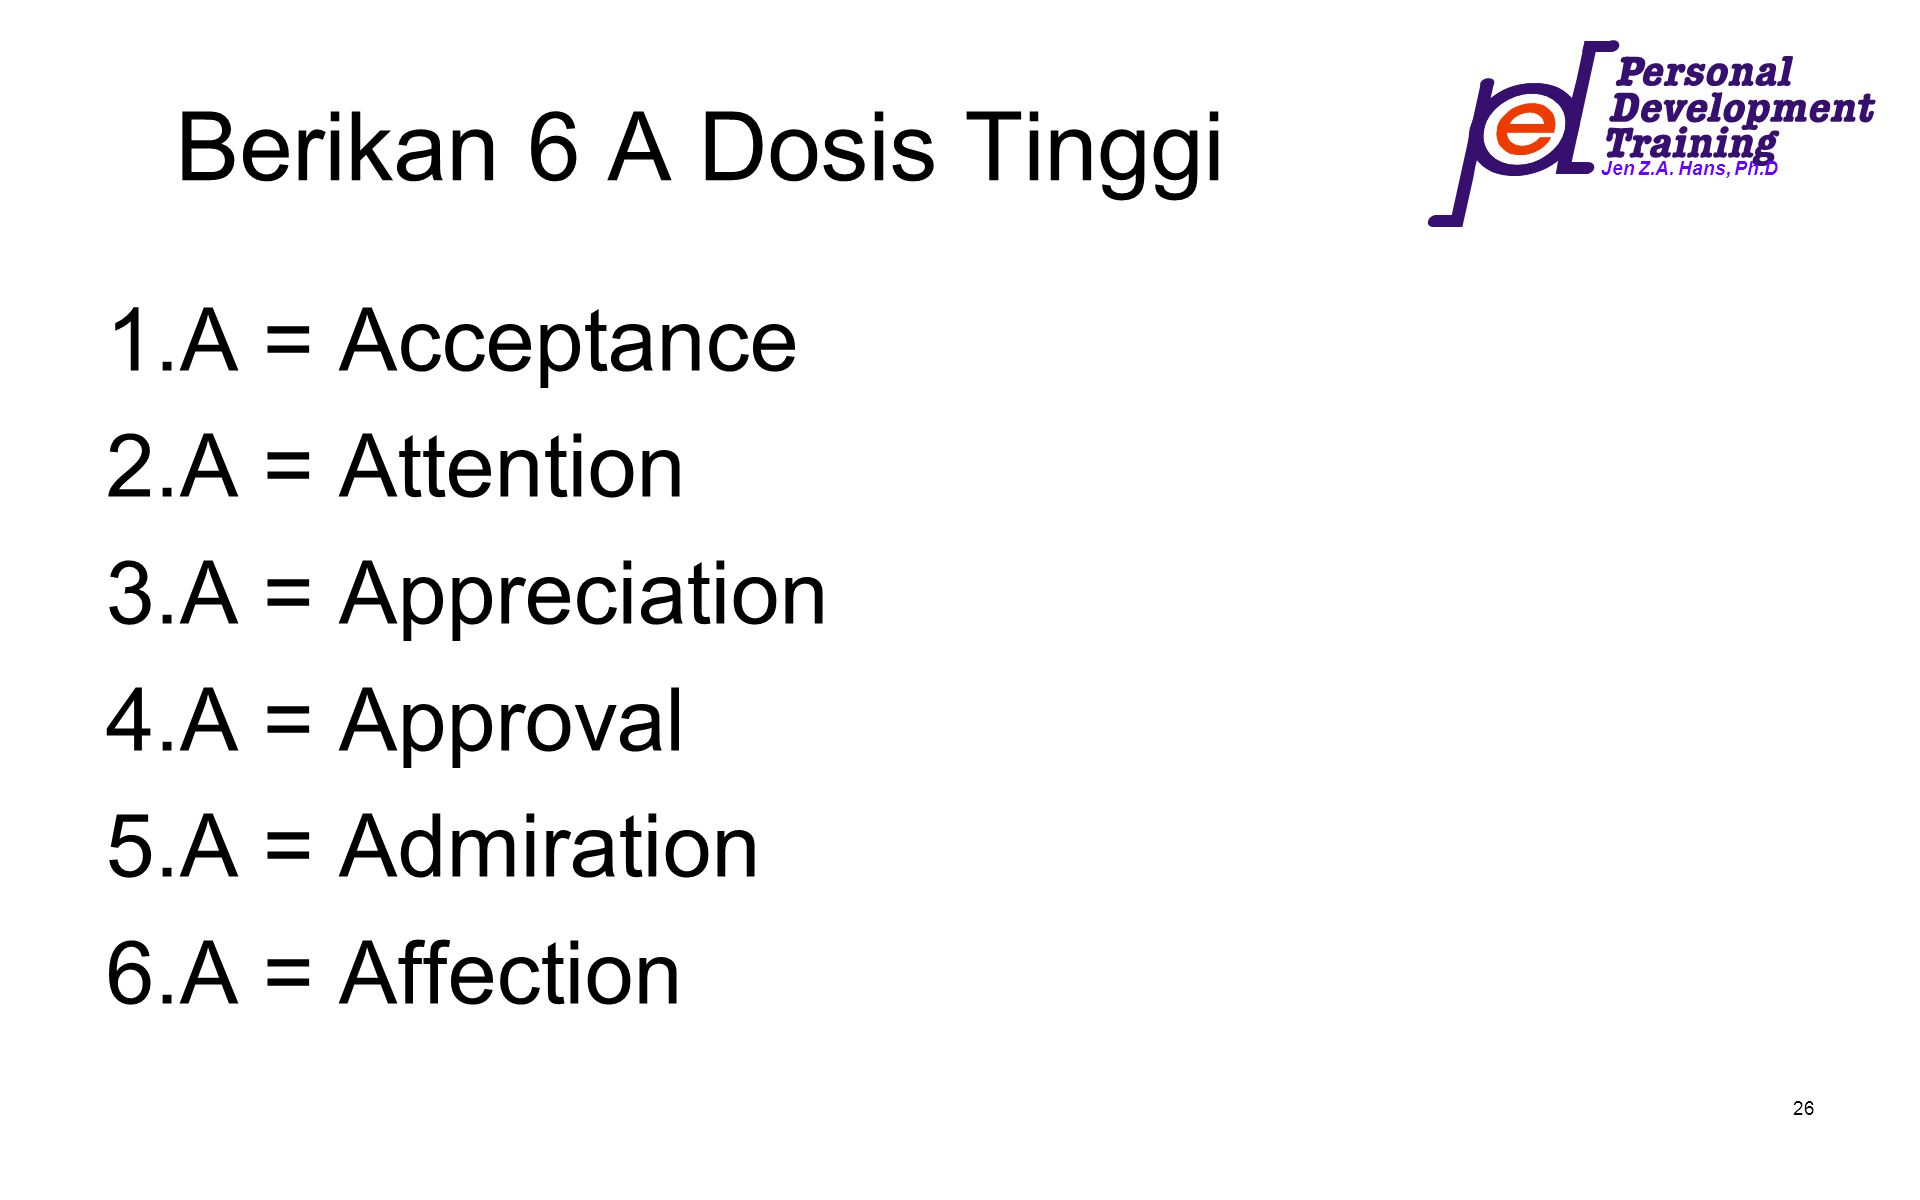 Berikan 6 A Dosis Tinggi A = Acceptance A = Attention A = Appreciation